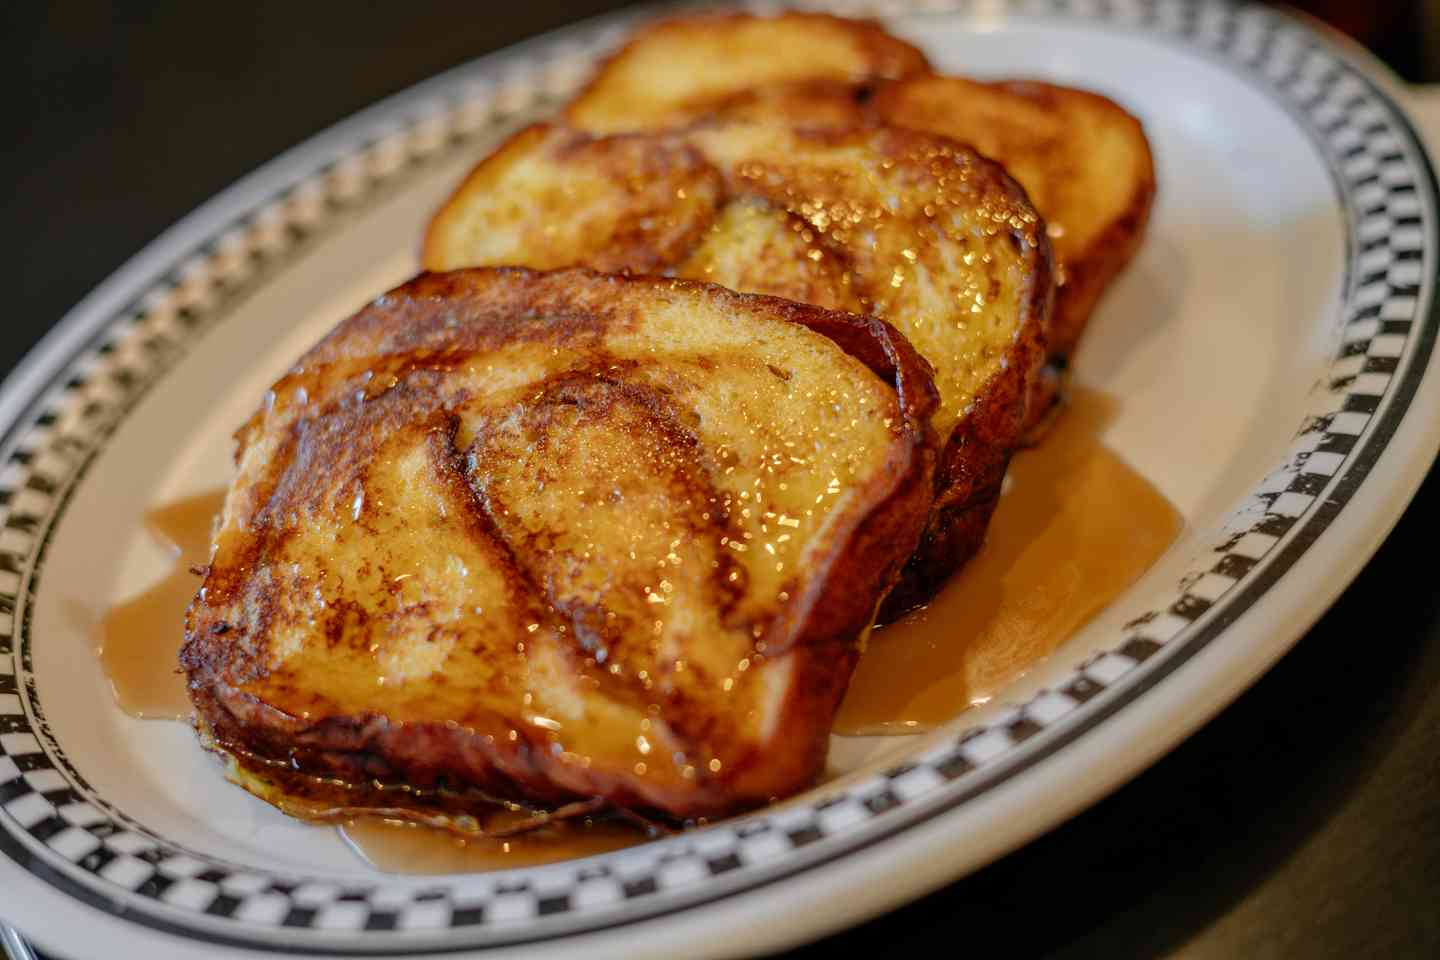 COUNTRY INN FRENCH TOAST*